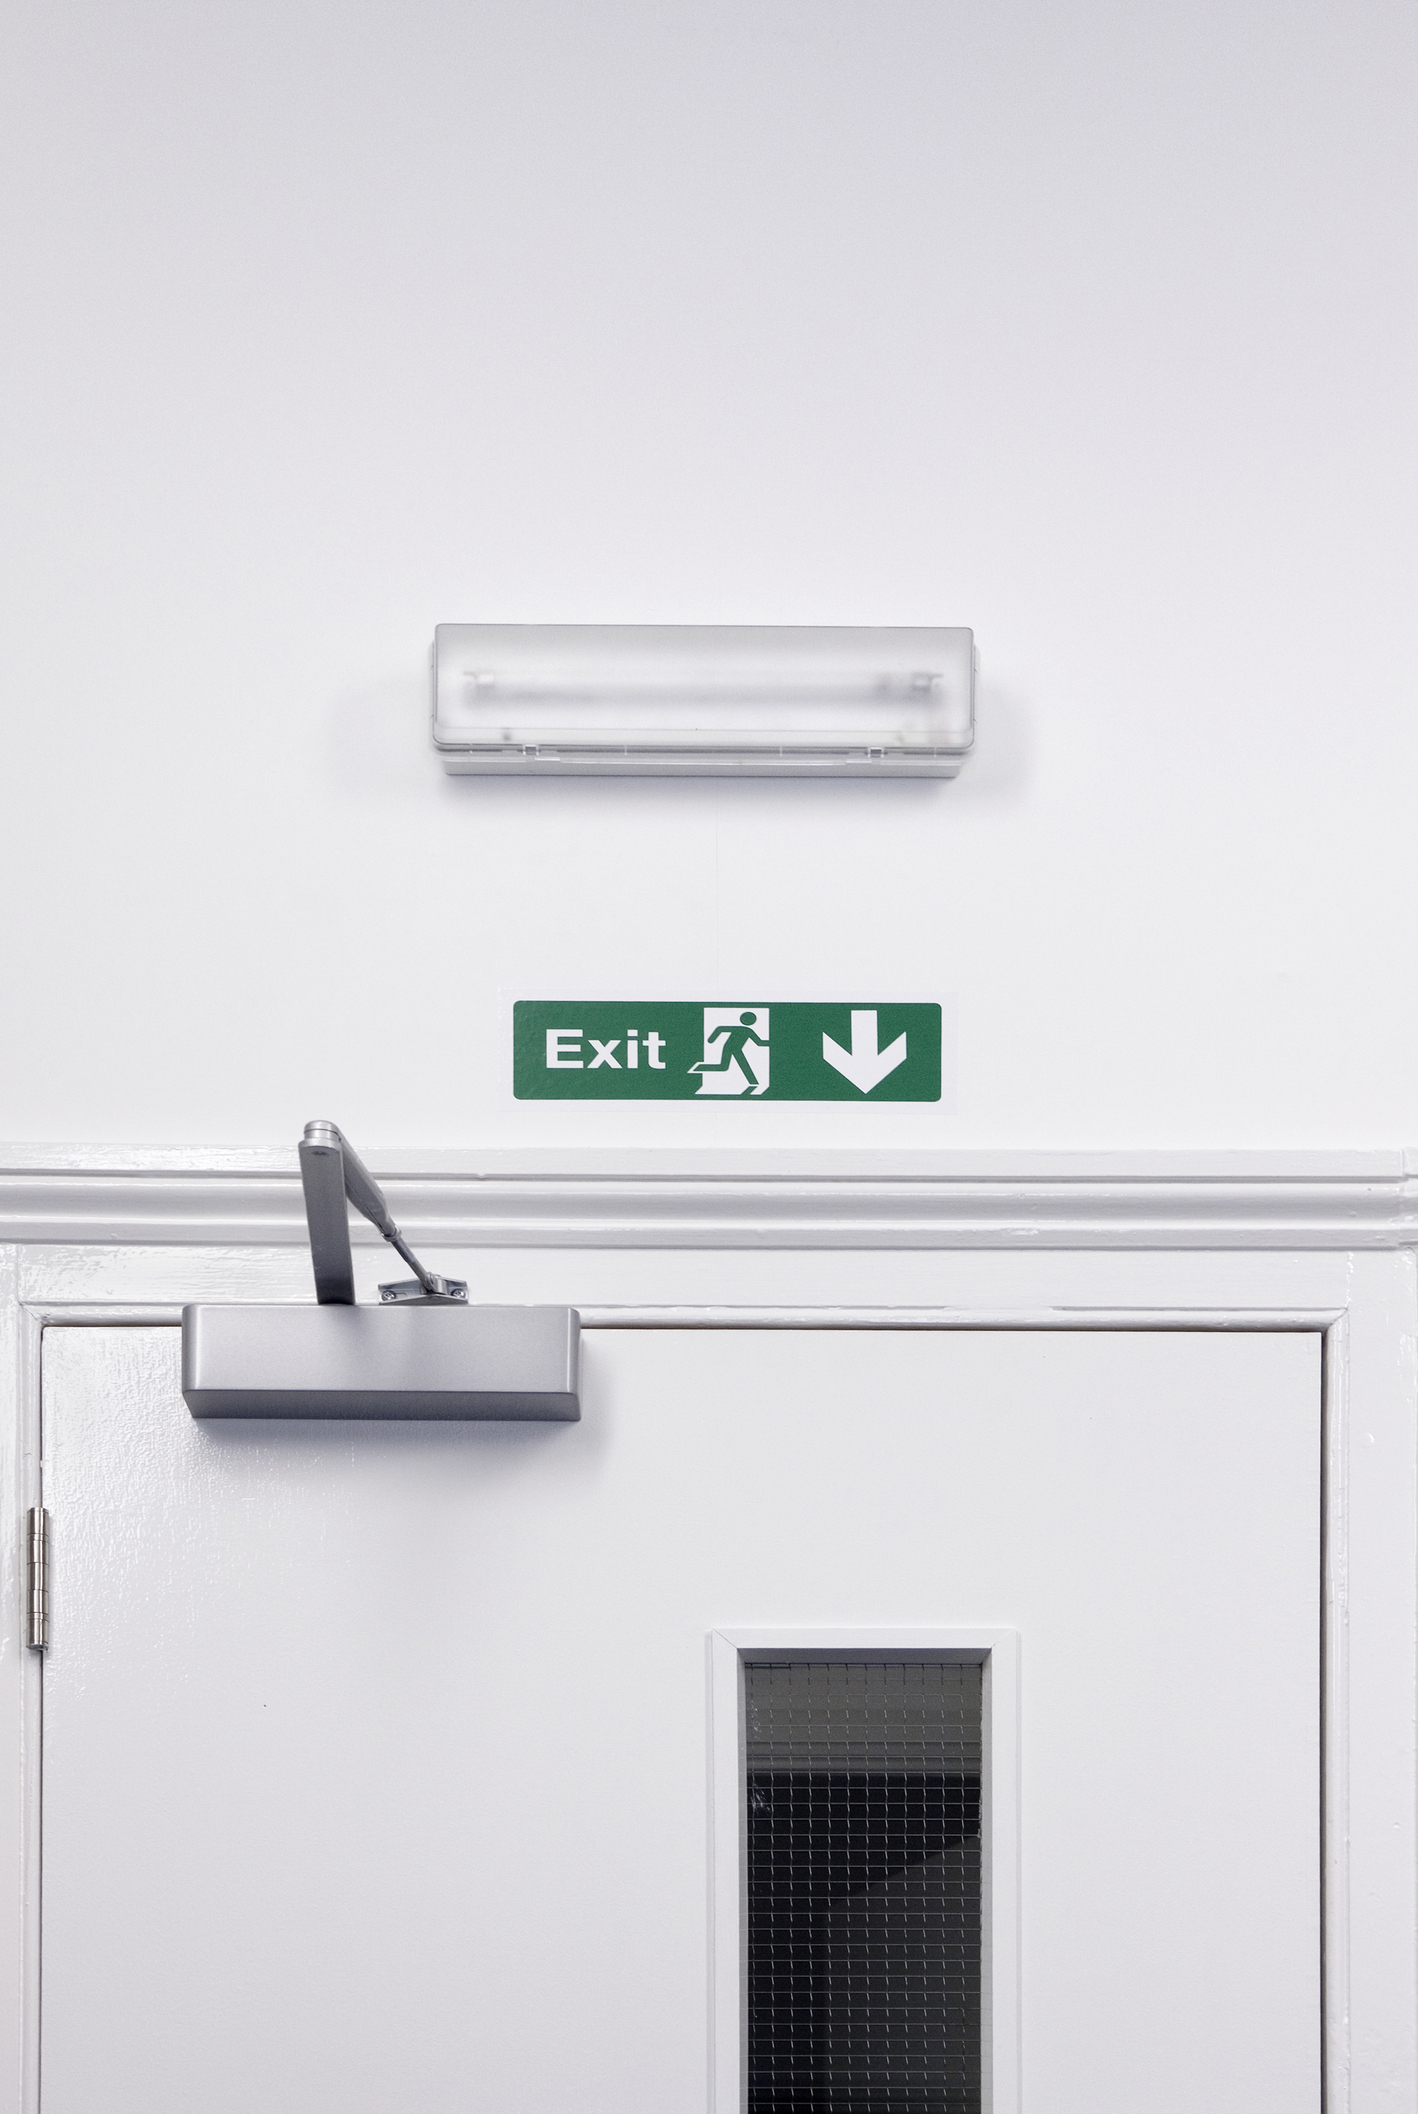 Fire safety solution emergency exit door